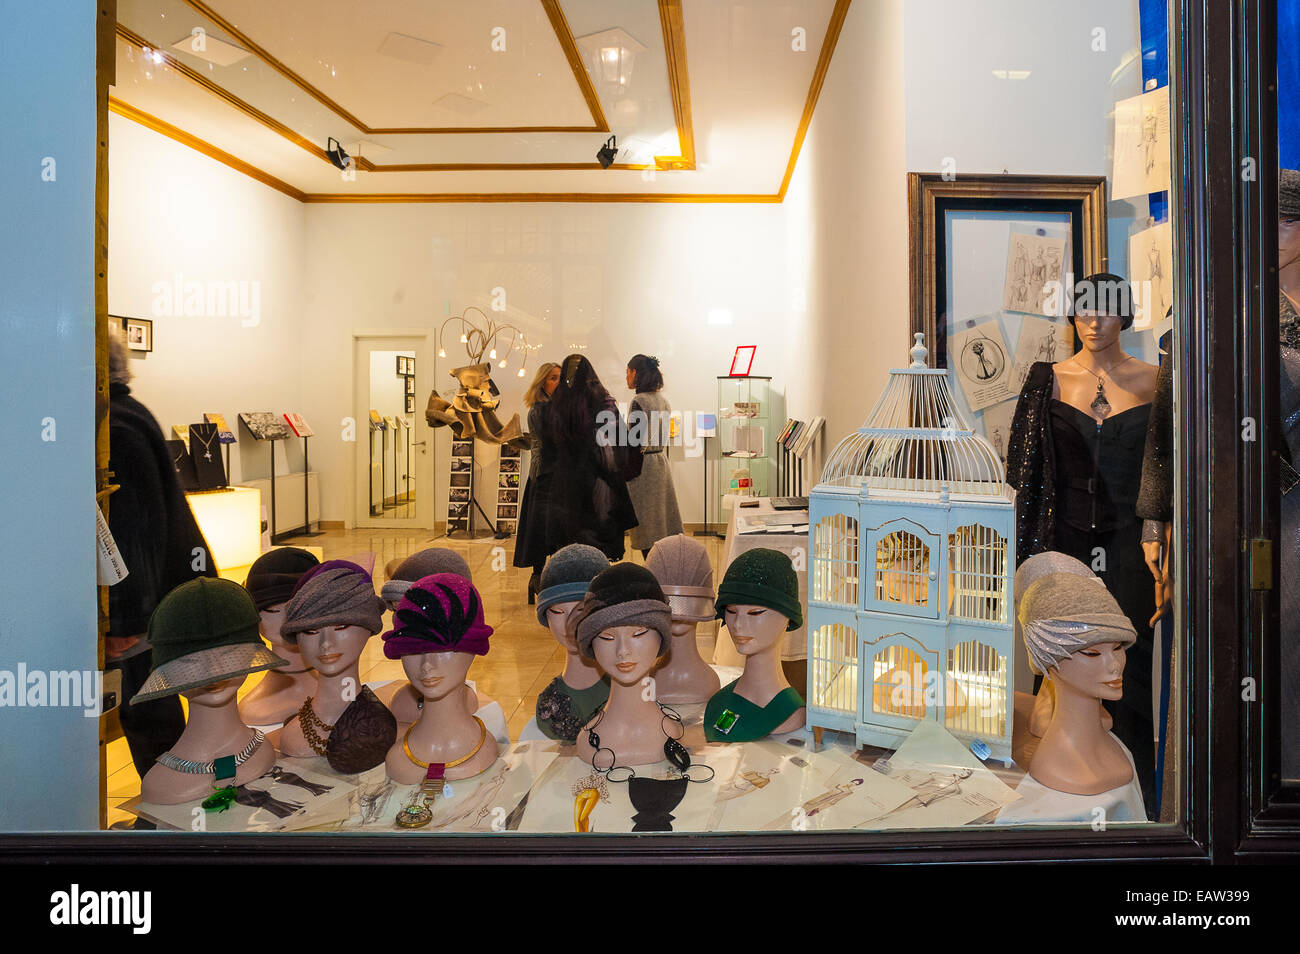 Turin, Italy. 20th November, 2014. Inauguration of temporary stores and 10 with bubbles suspended inside each, a - Stock Image